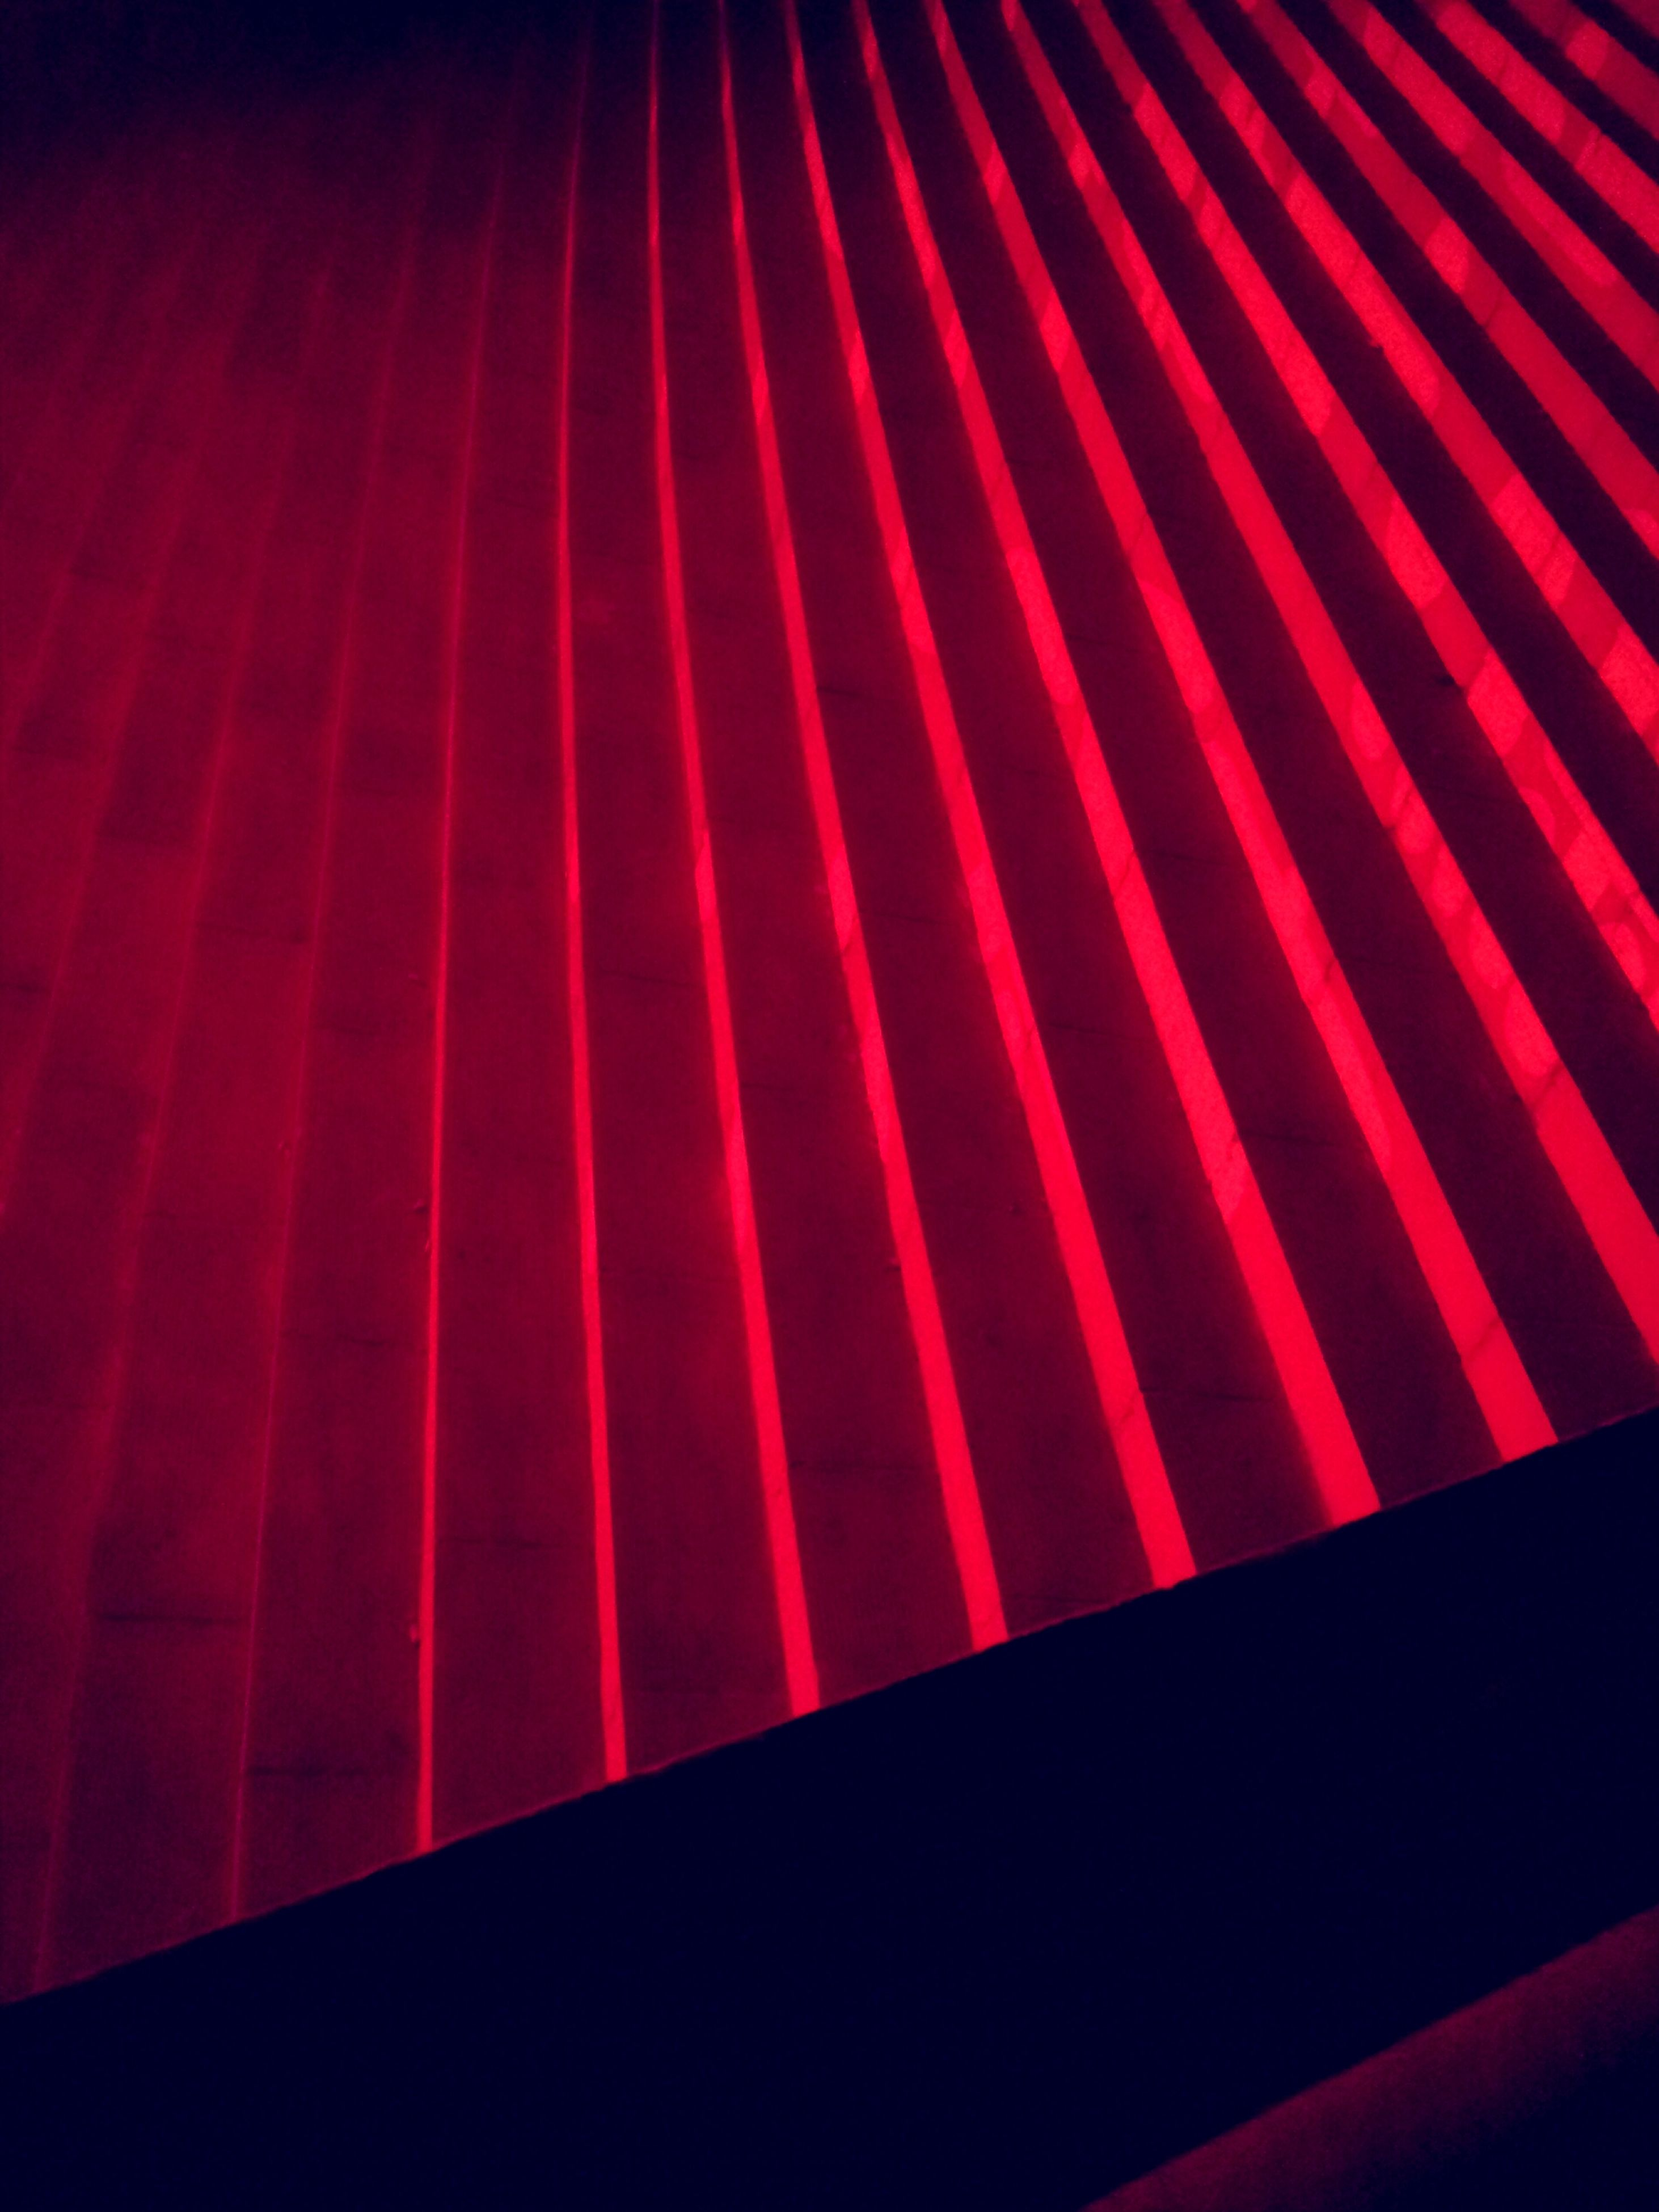 red, indoors, pattern, backgrounds, full frame, close-up, no people, striped, illuminated, night, abstract, design, vibrant color, multi colored, textured, high angle view, detail, pink color, in a row, dark